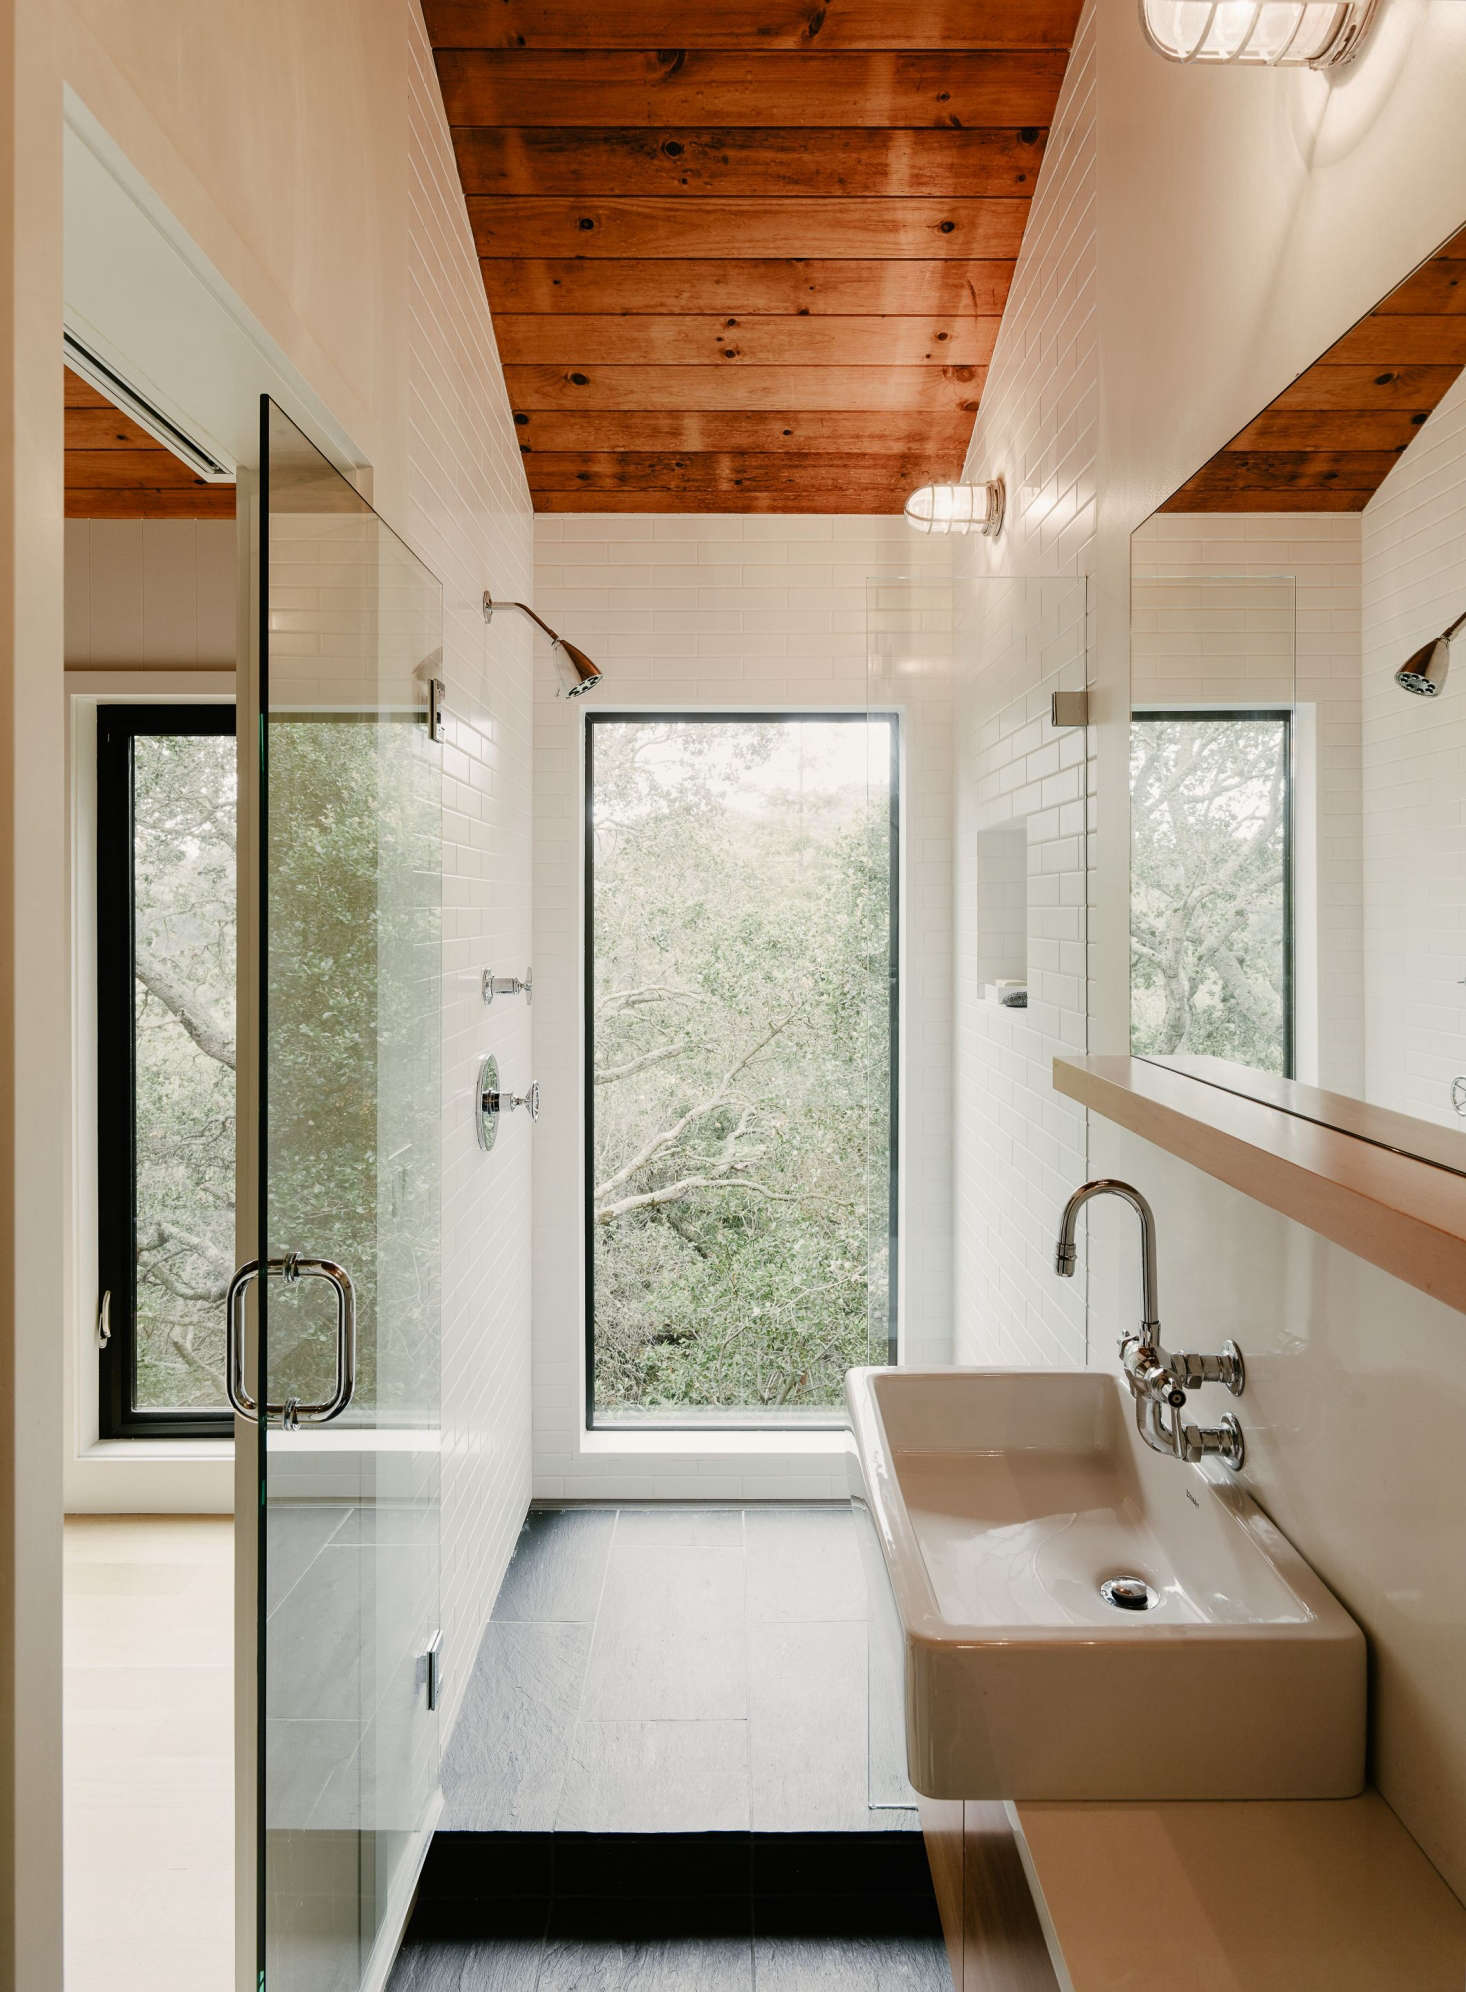 Expert Advice 10 Essential Tips For Designing The Bathroom Remodelista